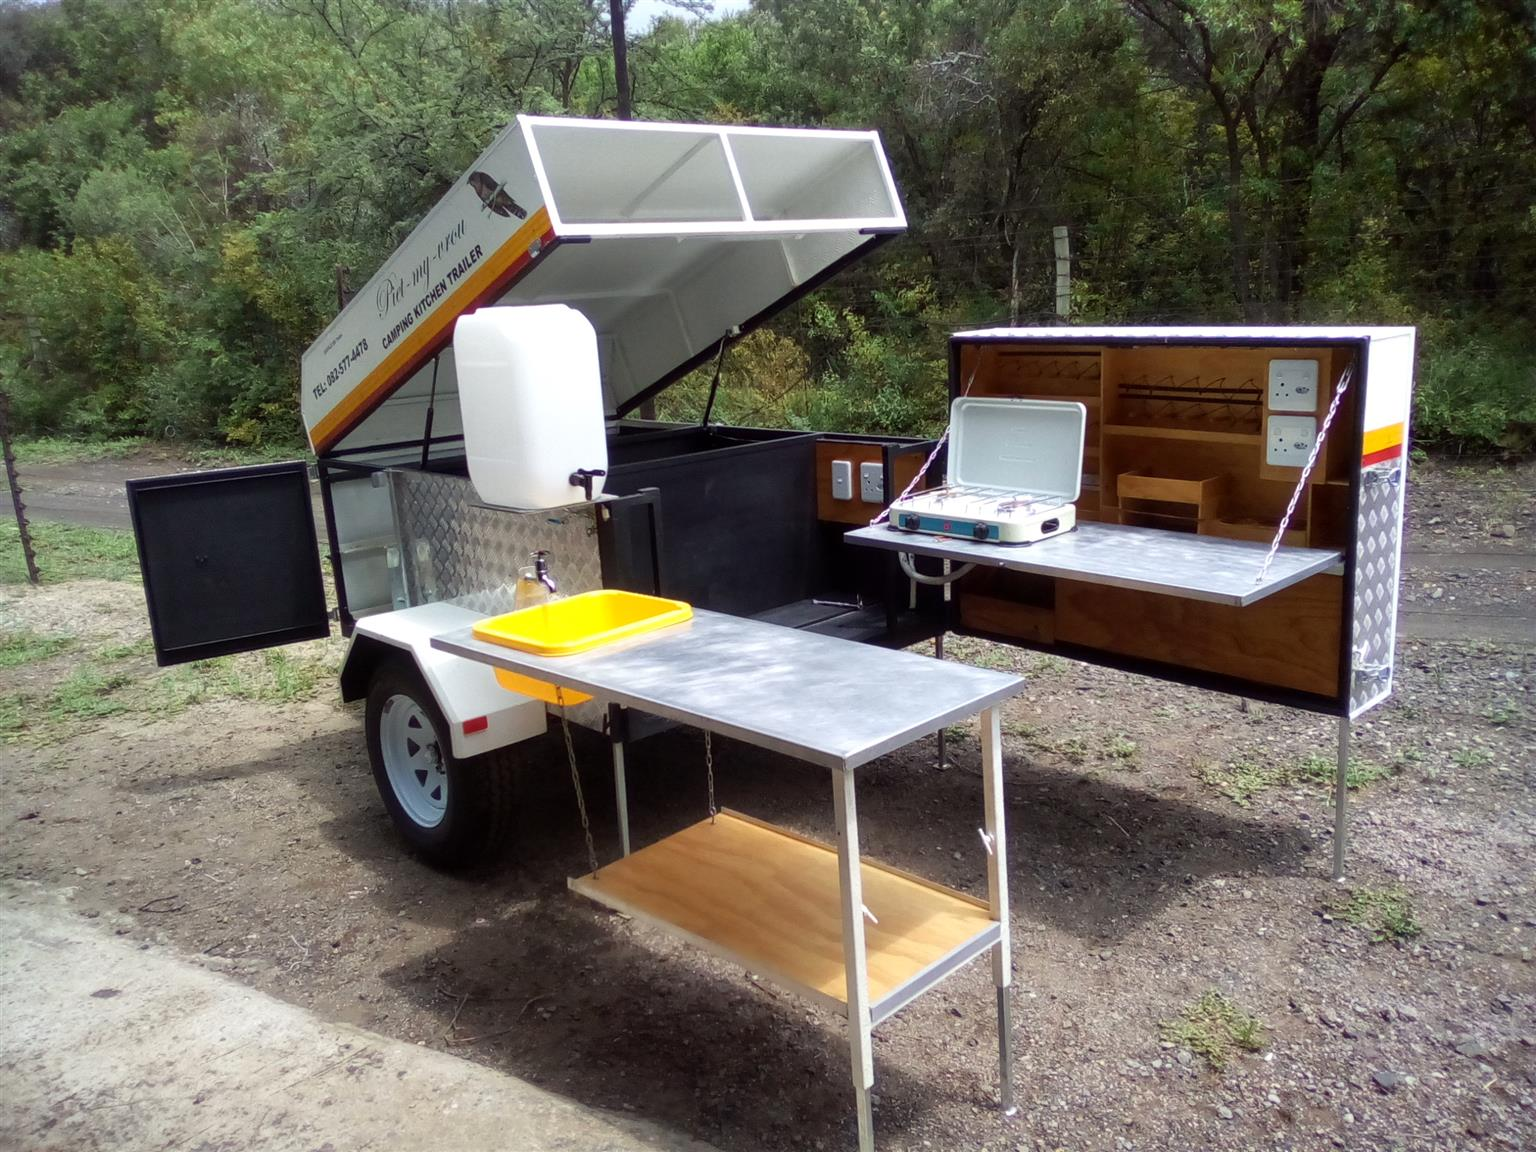 camping kitchen trailer 6 x 3 gazebo - Camping Kitchen